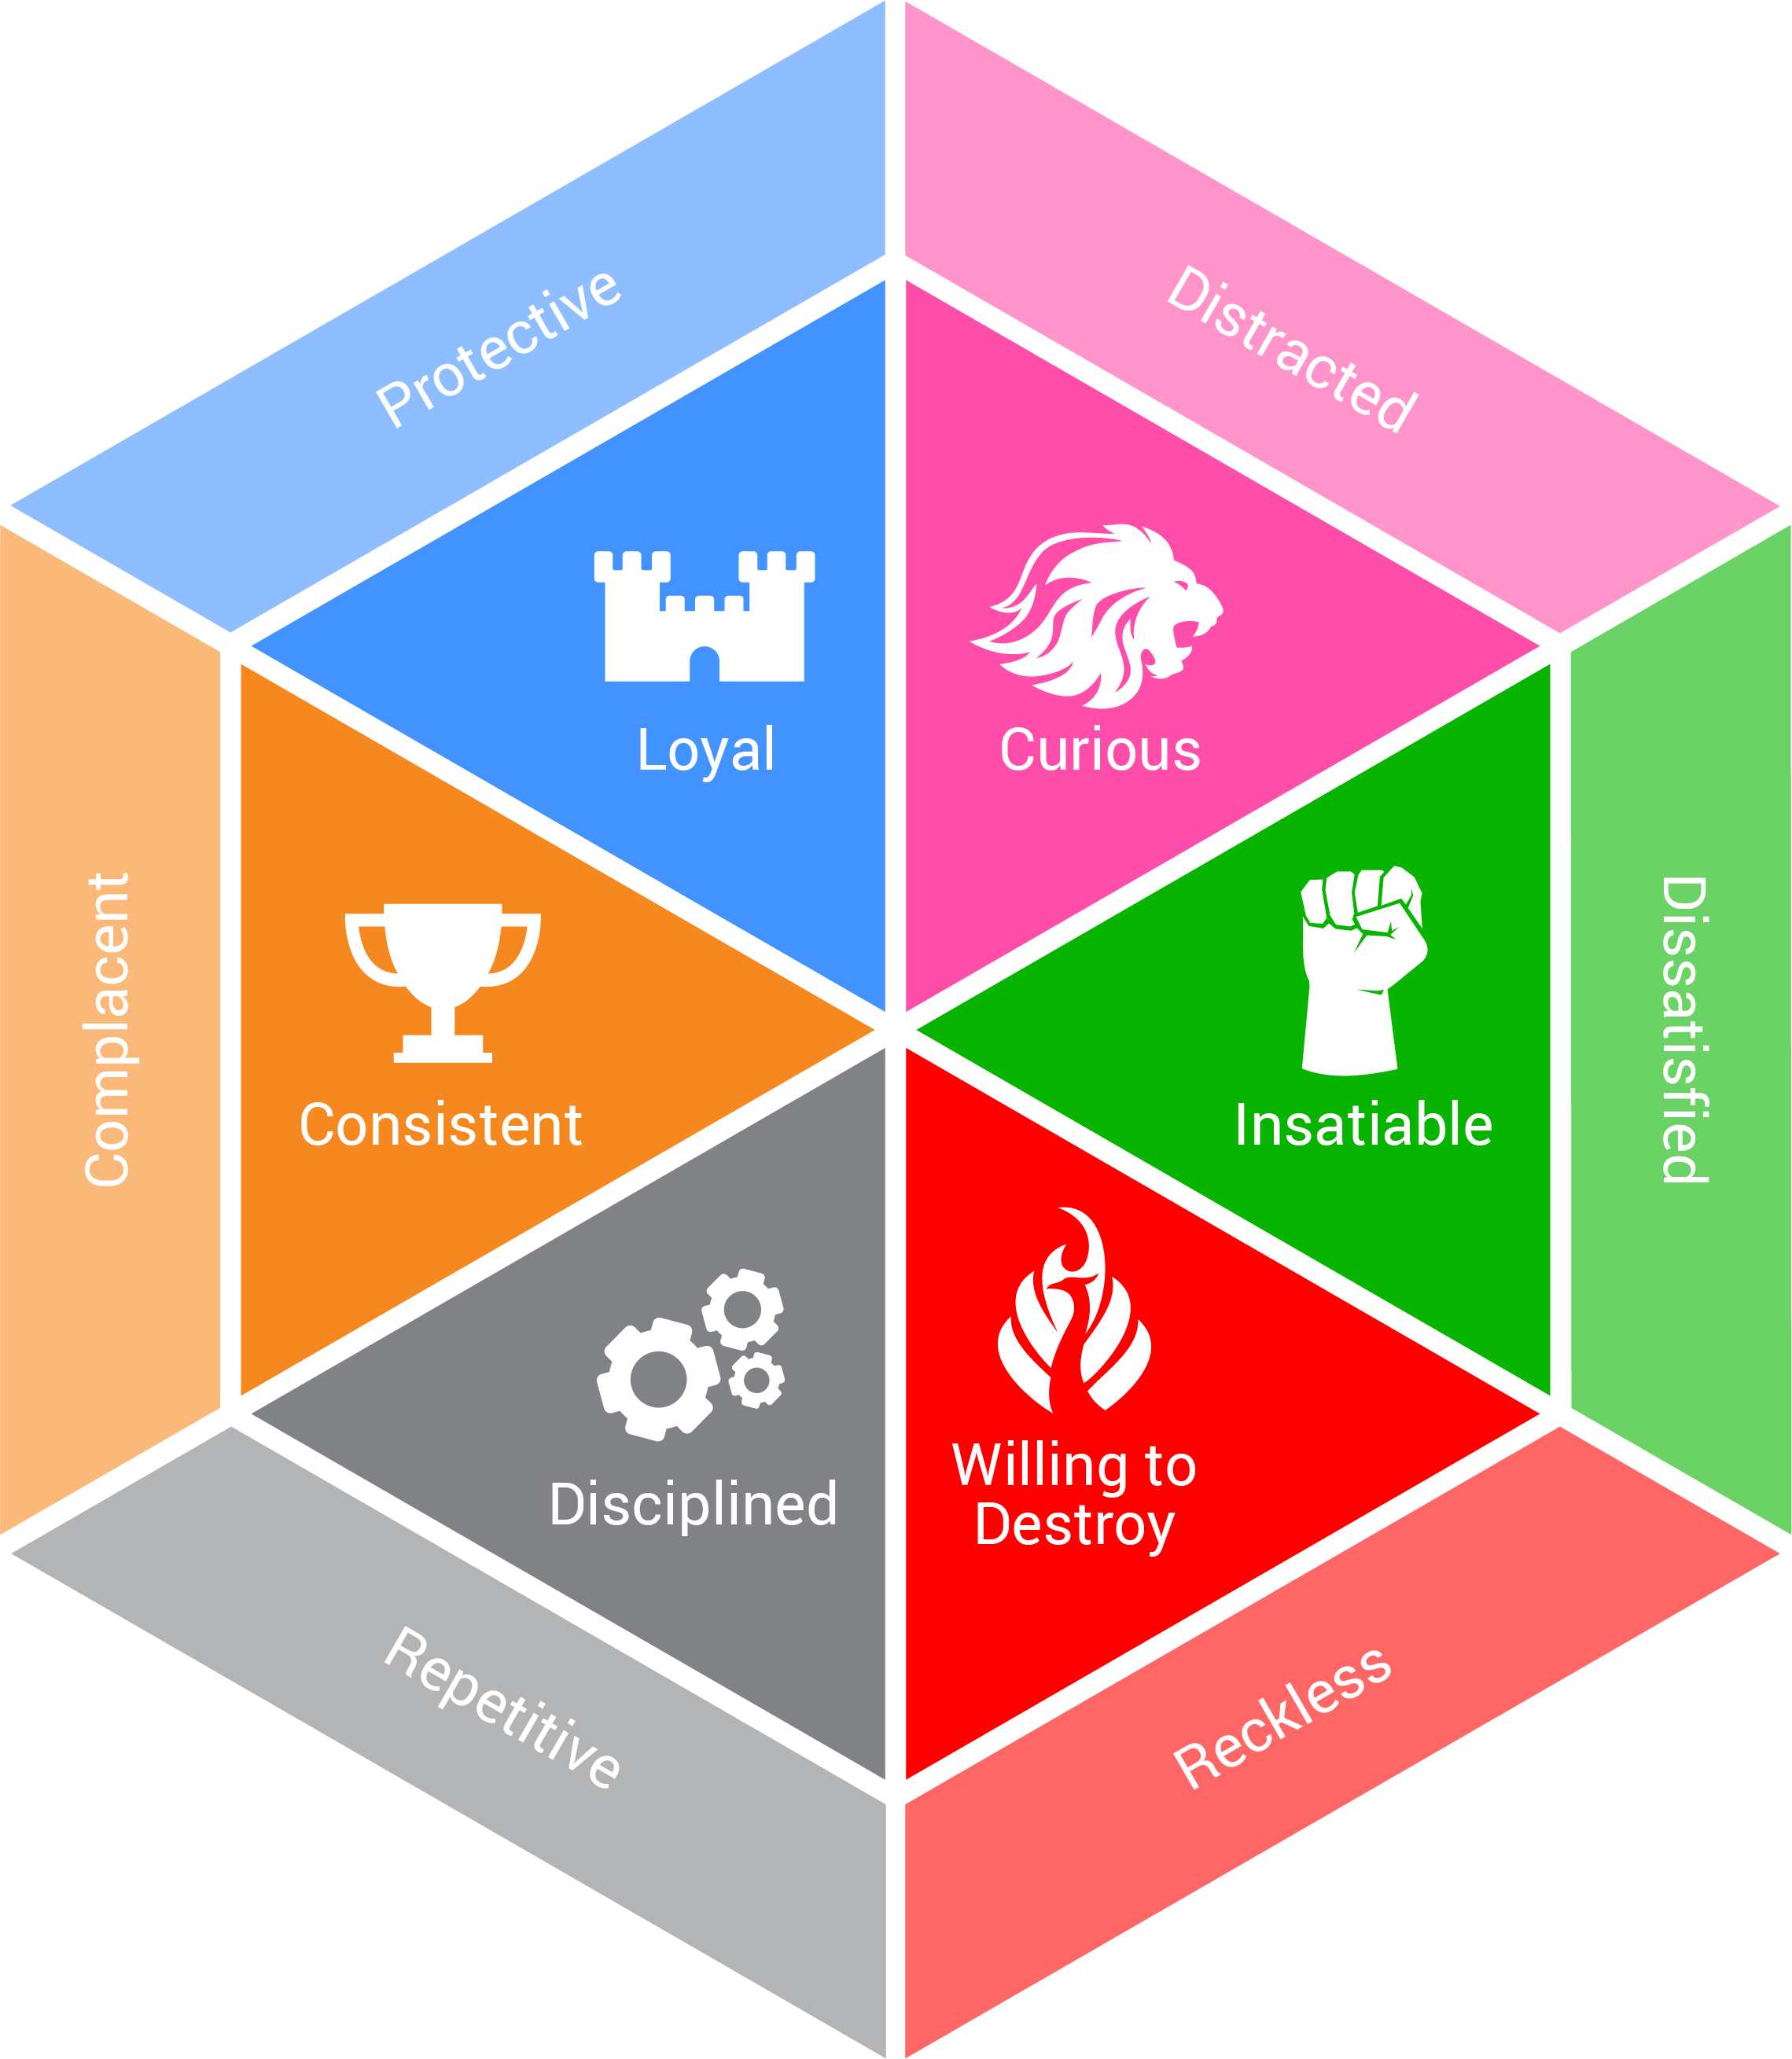 Innovation Assessment Hexagon